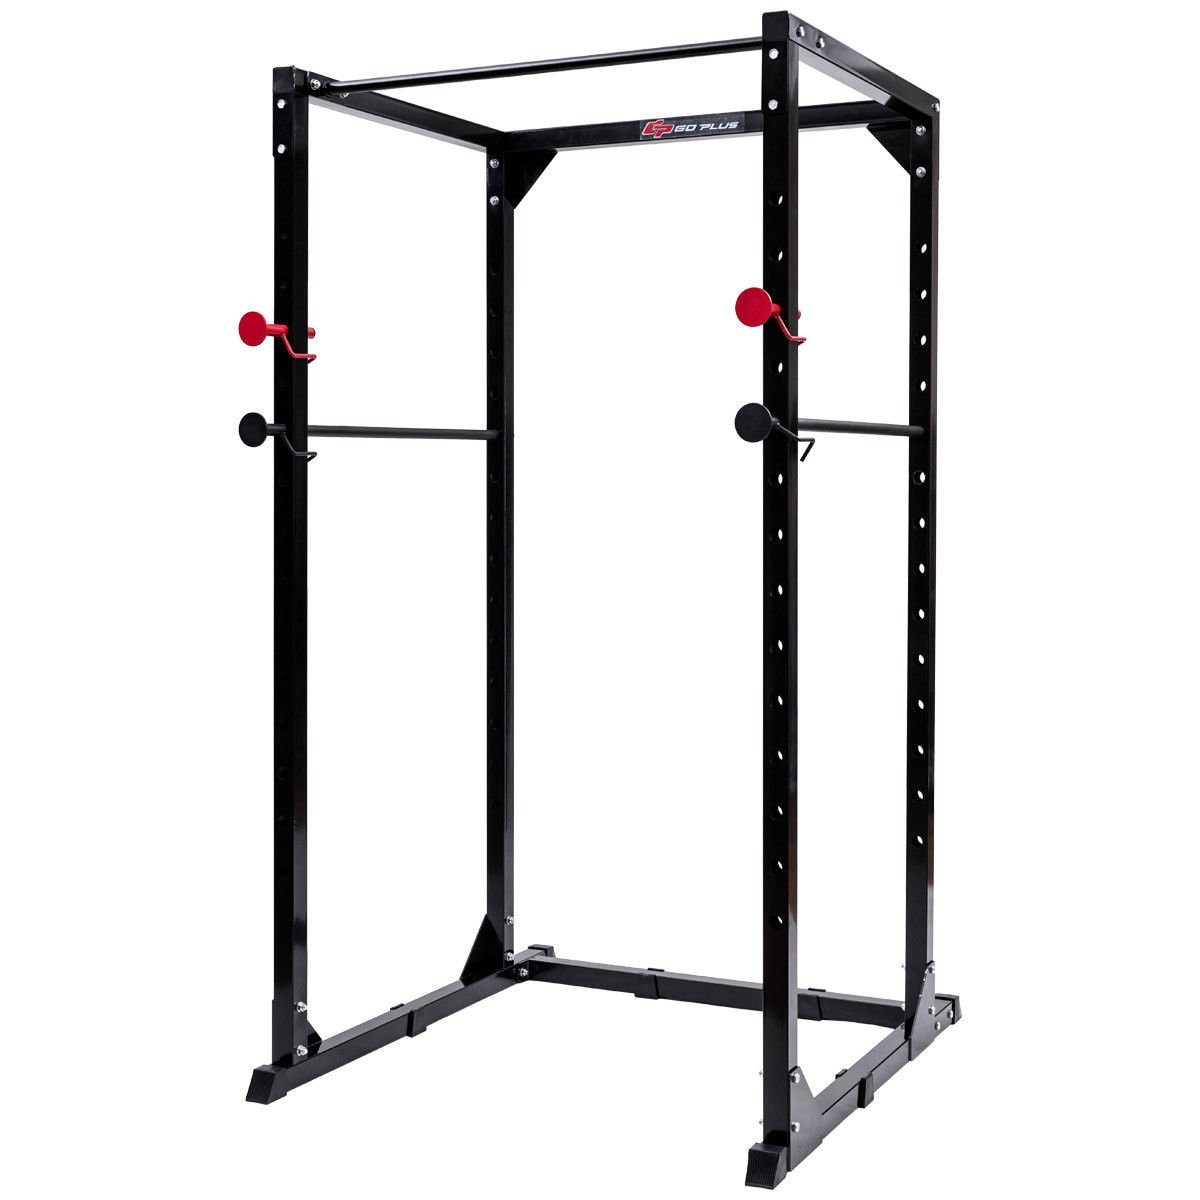 Power Rack Pull Chin Up Bars Squat Lift Cage Fitness Workout Strength Training by BUY JOY